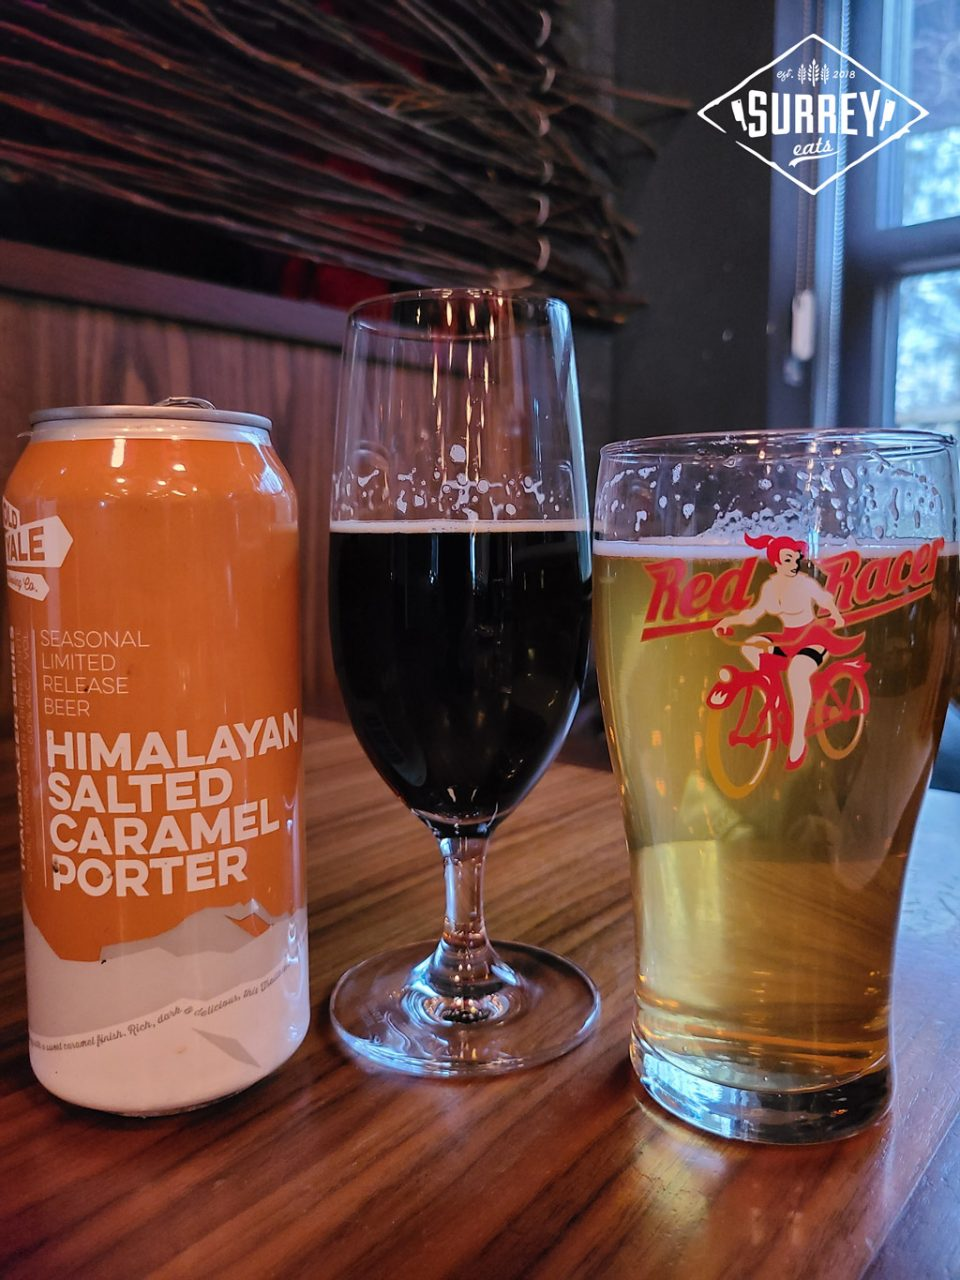 A can of Himalayan Salted Caramel Porter next to a glass of the dark beer and a glass of Red Racer lager